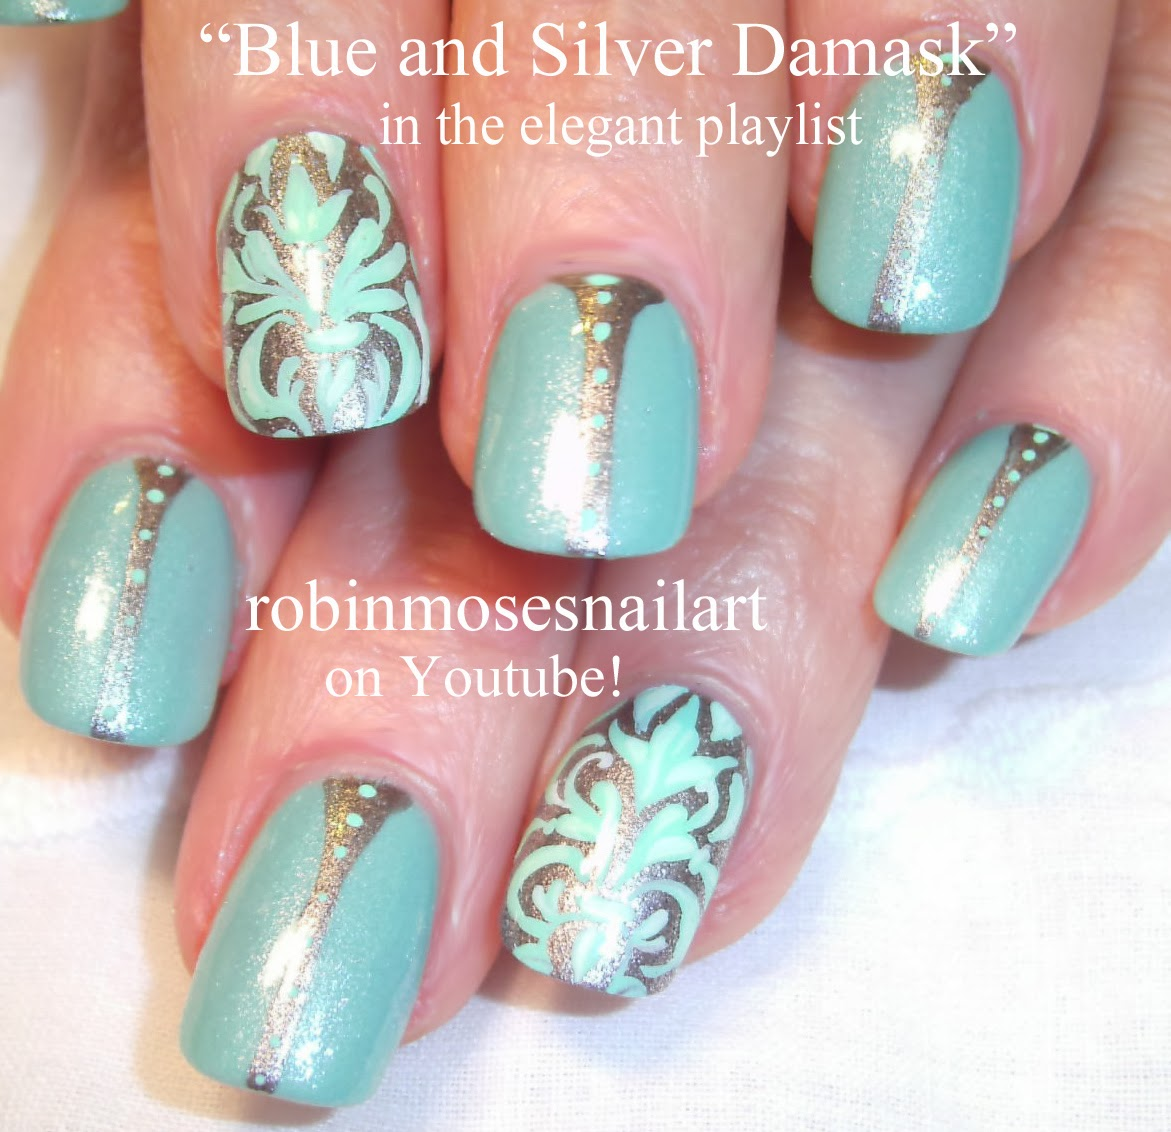 Nail Art Ideas » Fancy Nail Arts - Pictures of Nail Art Design Ideas